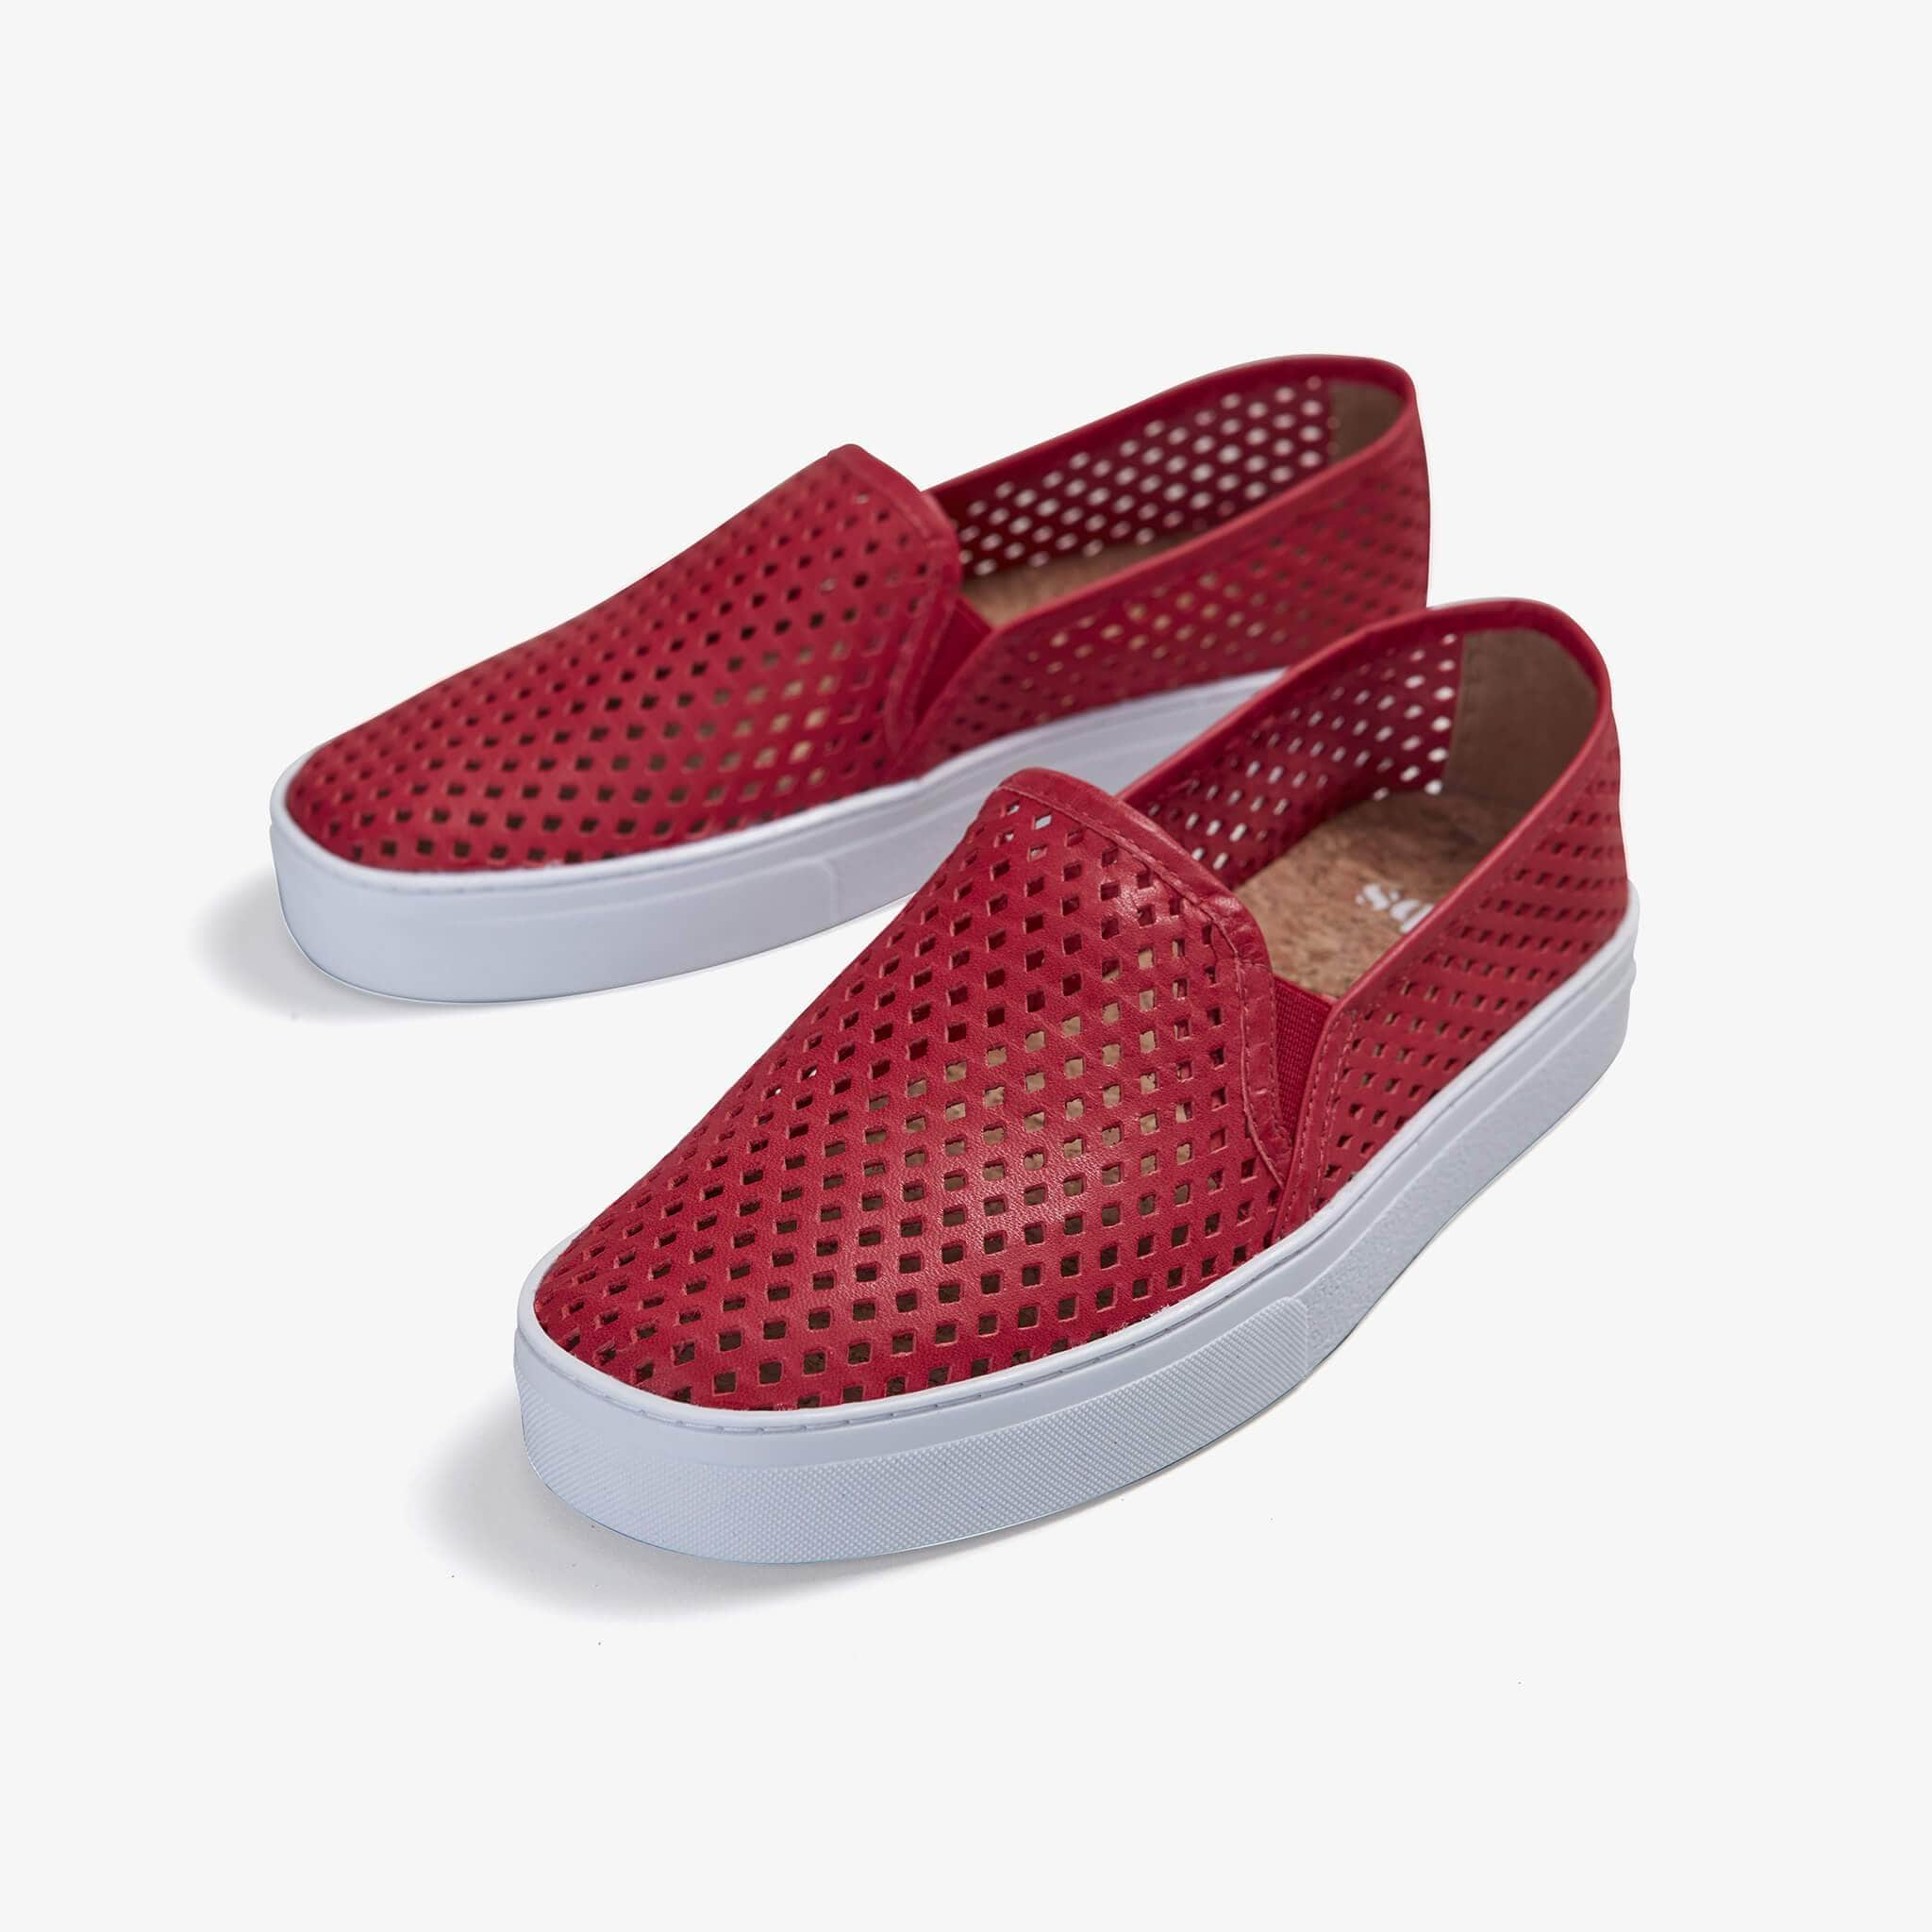 Jibs Classic True Red Slip On Sneaker-Shoe